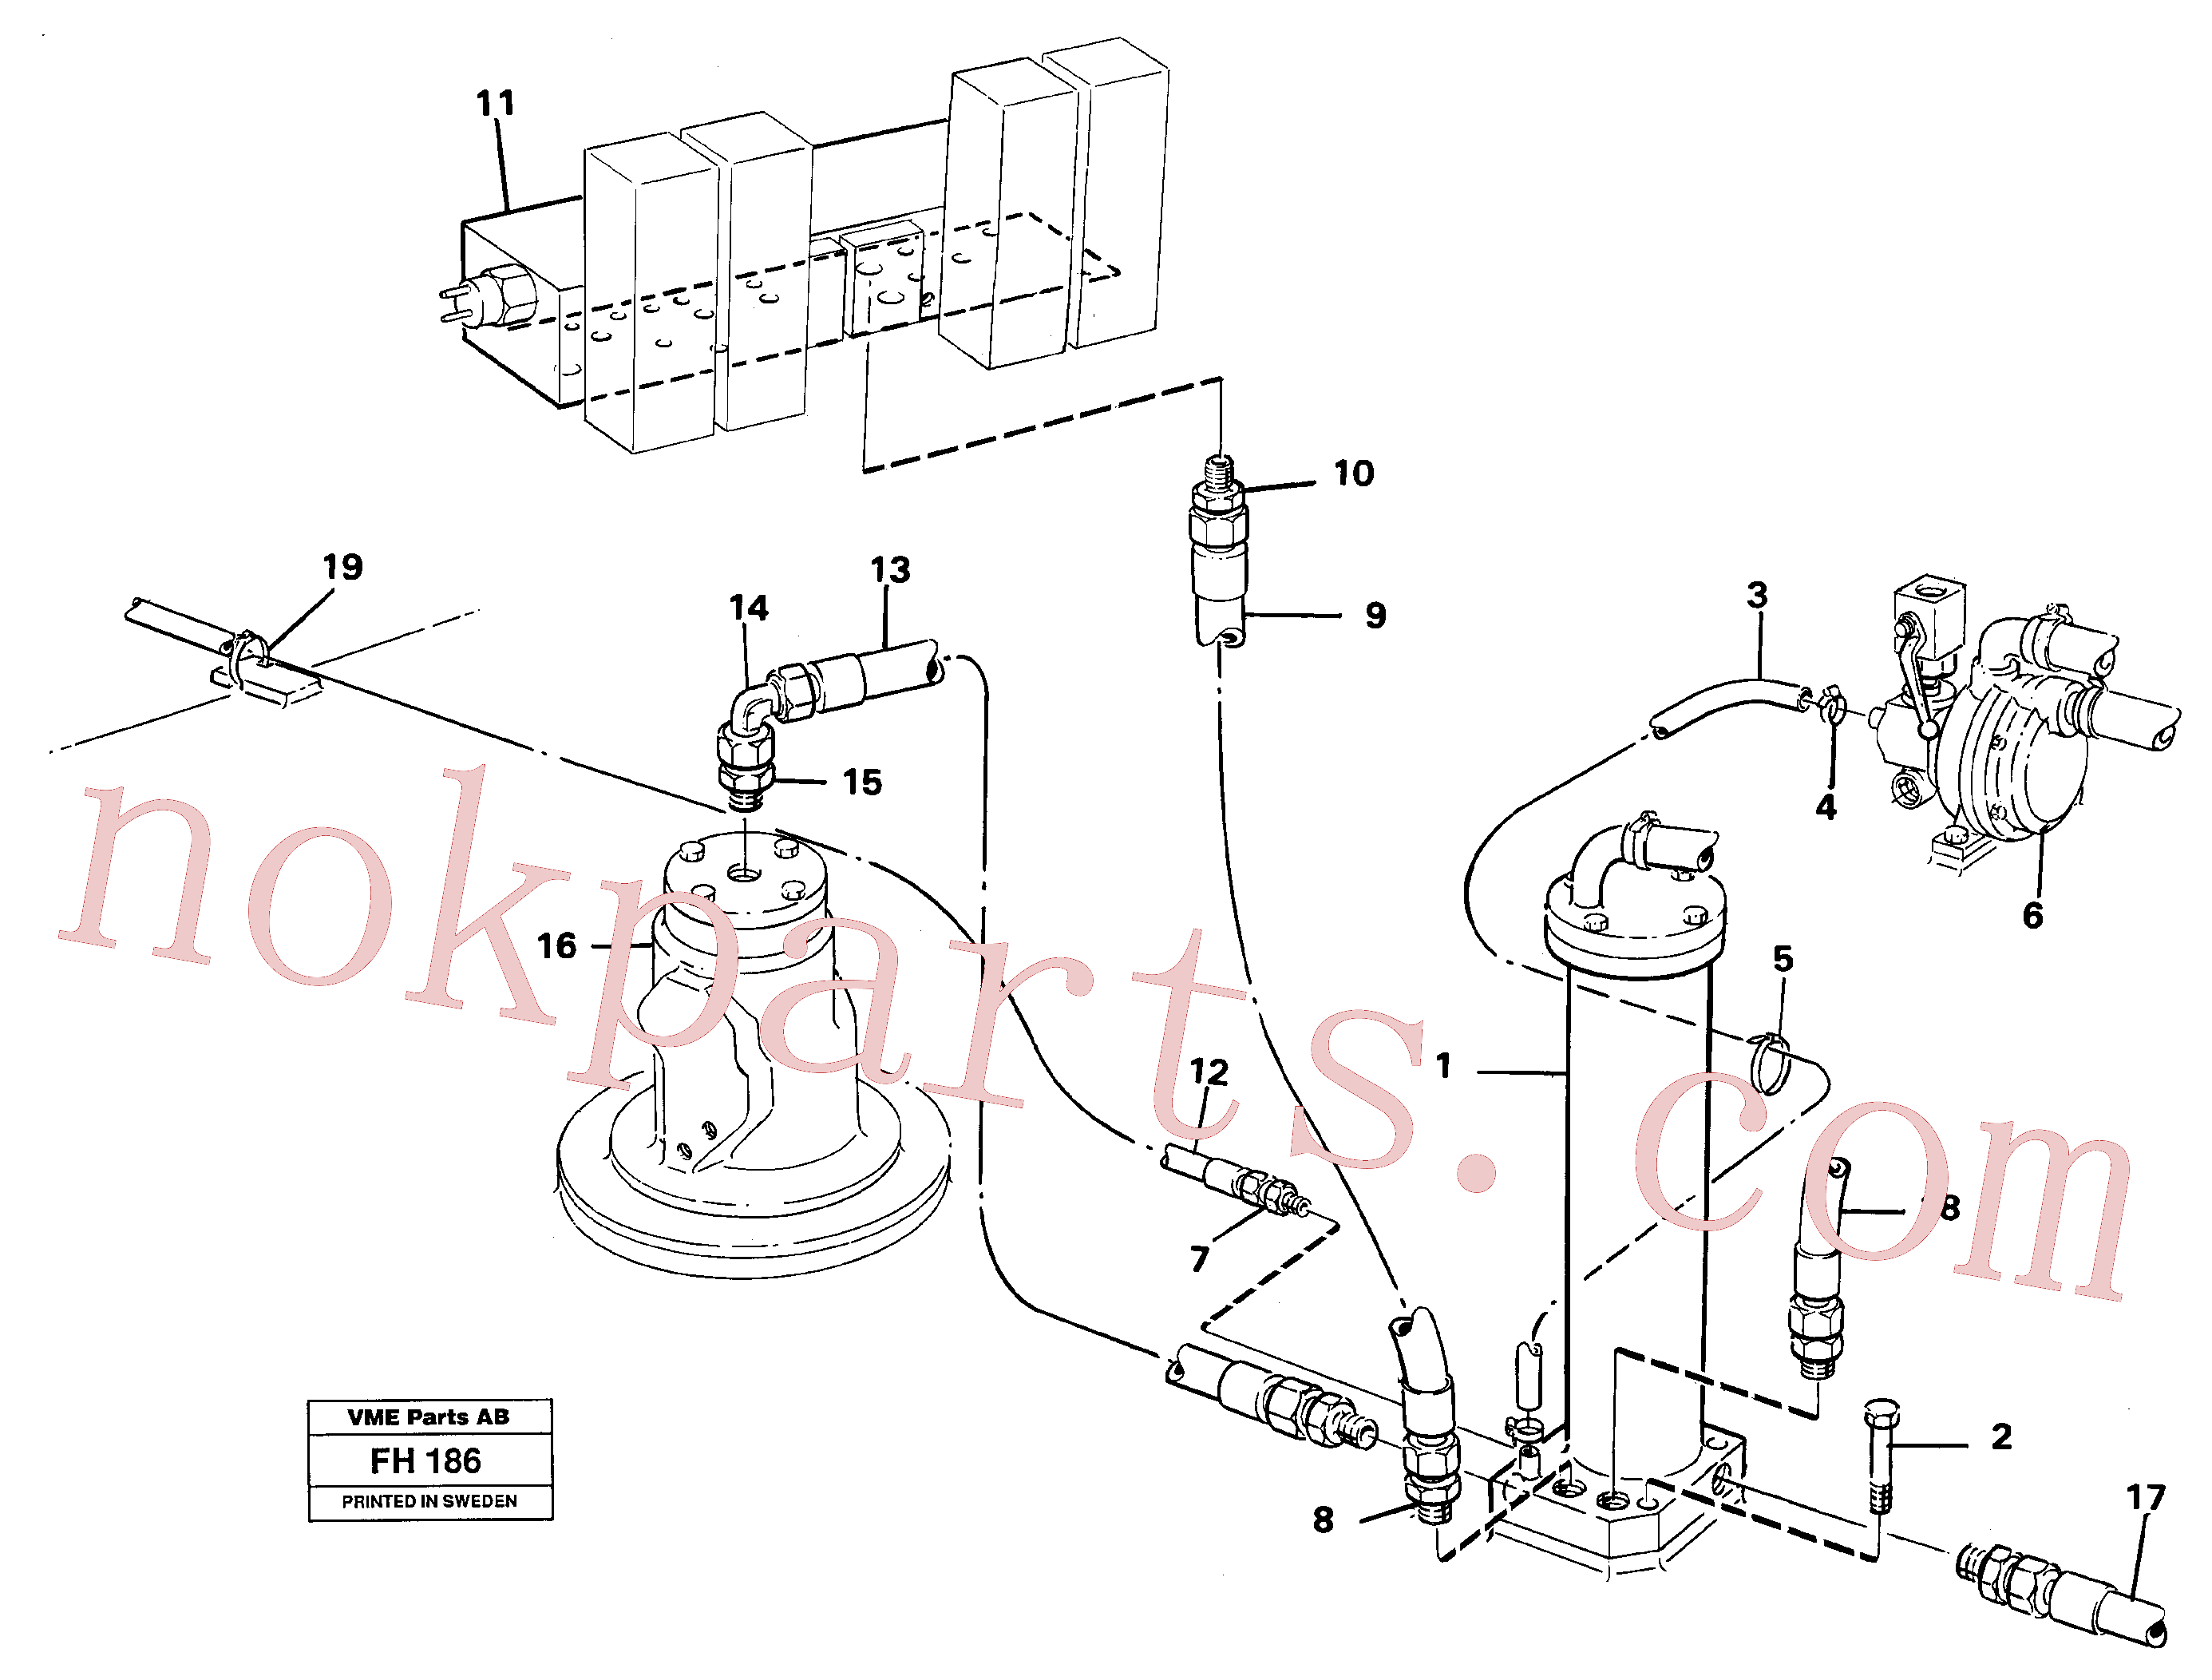 ZM2908909 for Volvo Leak oil filter, with connections(FH186 assembly)